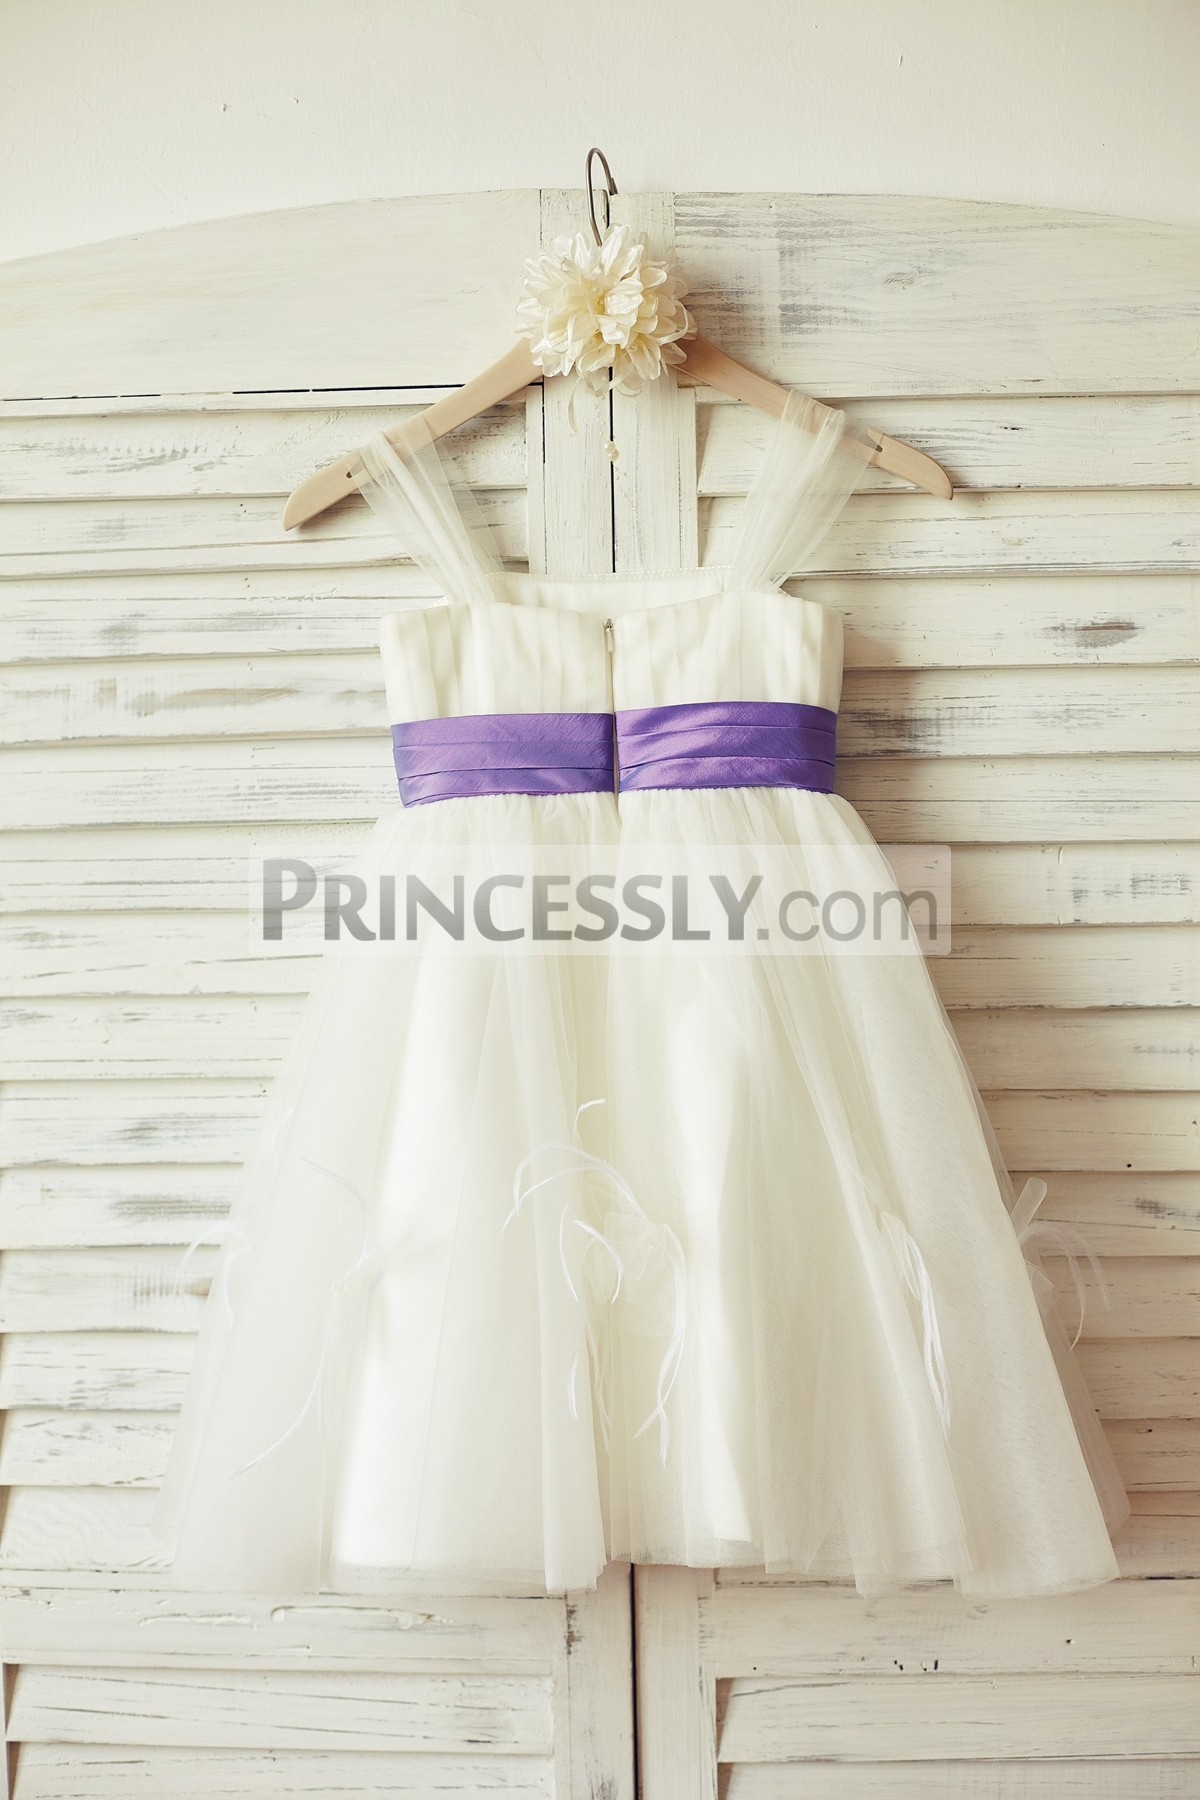 Ivory tulle flower girl dress with lavender sash & feathers & flowers